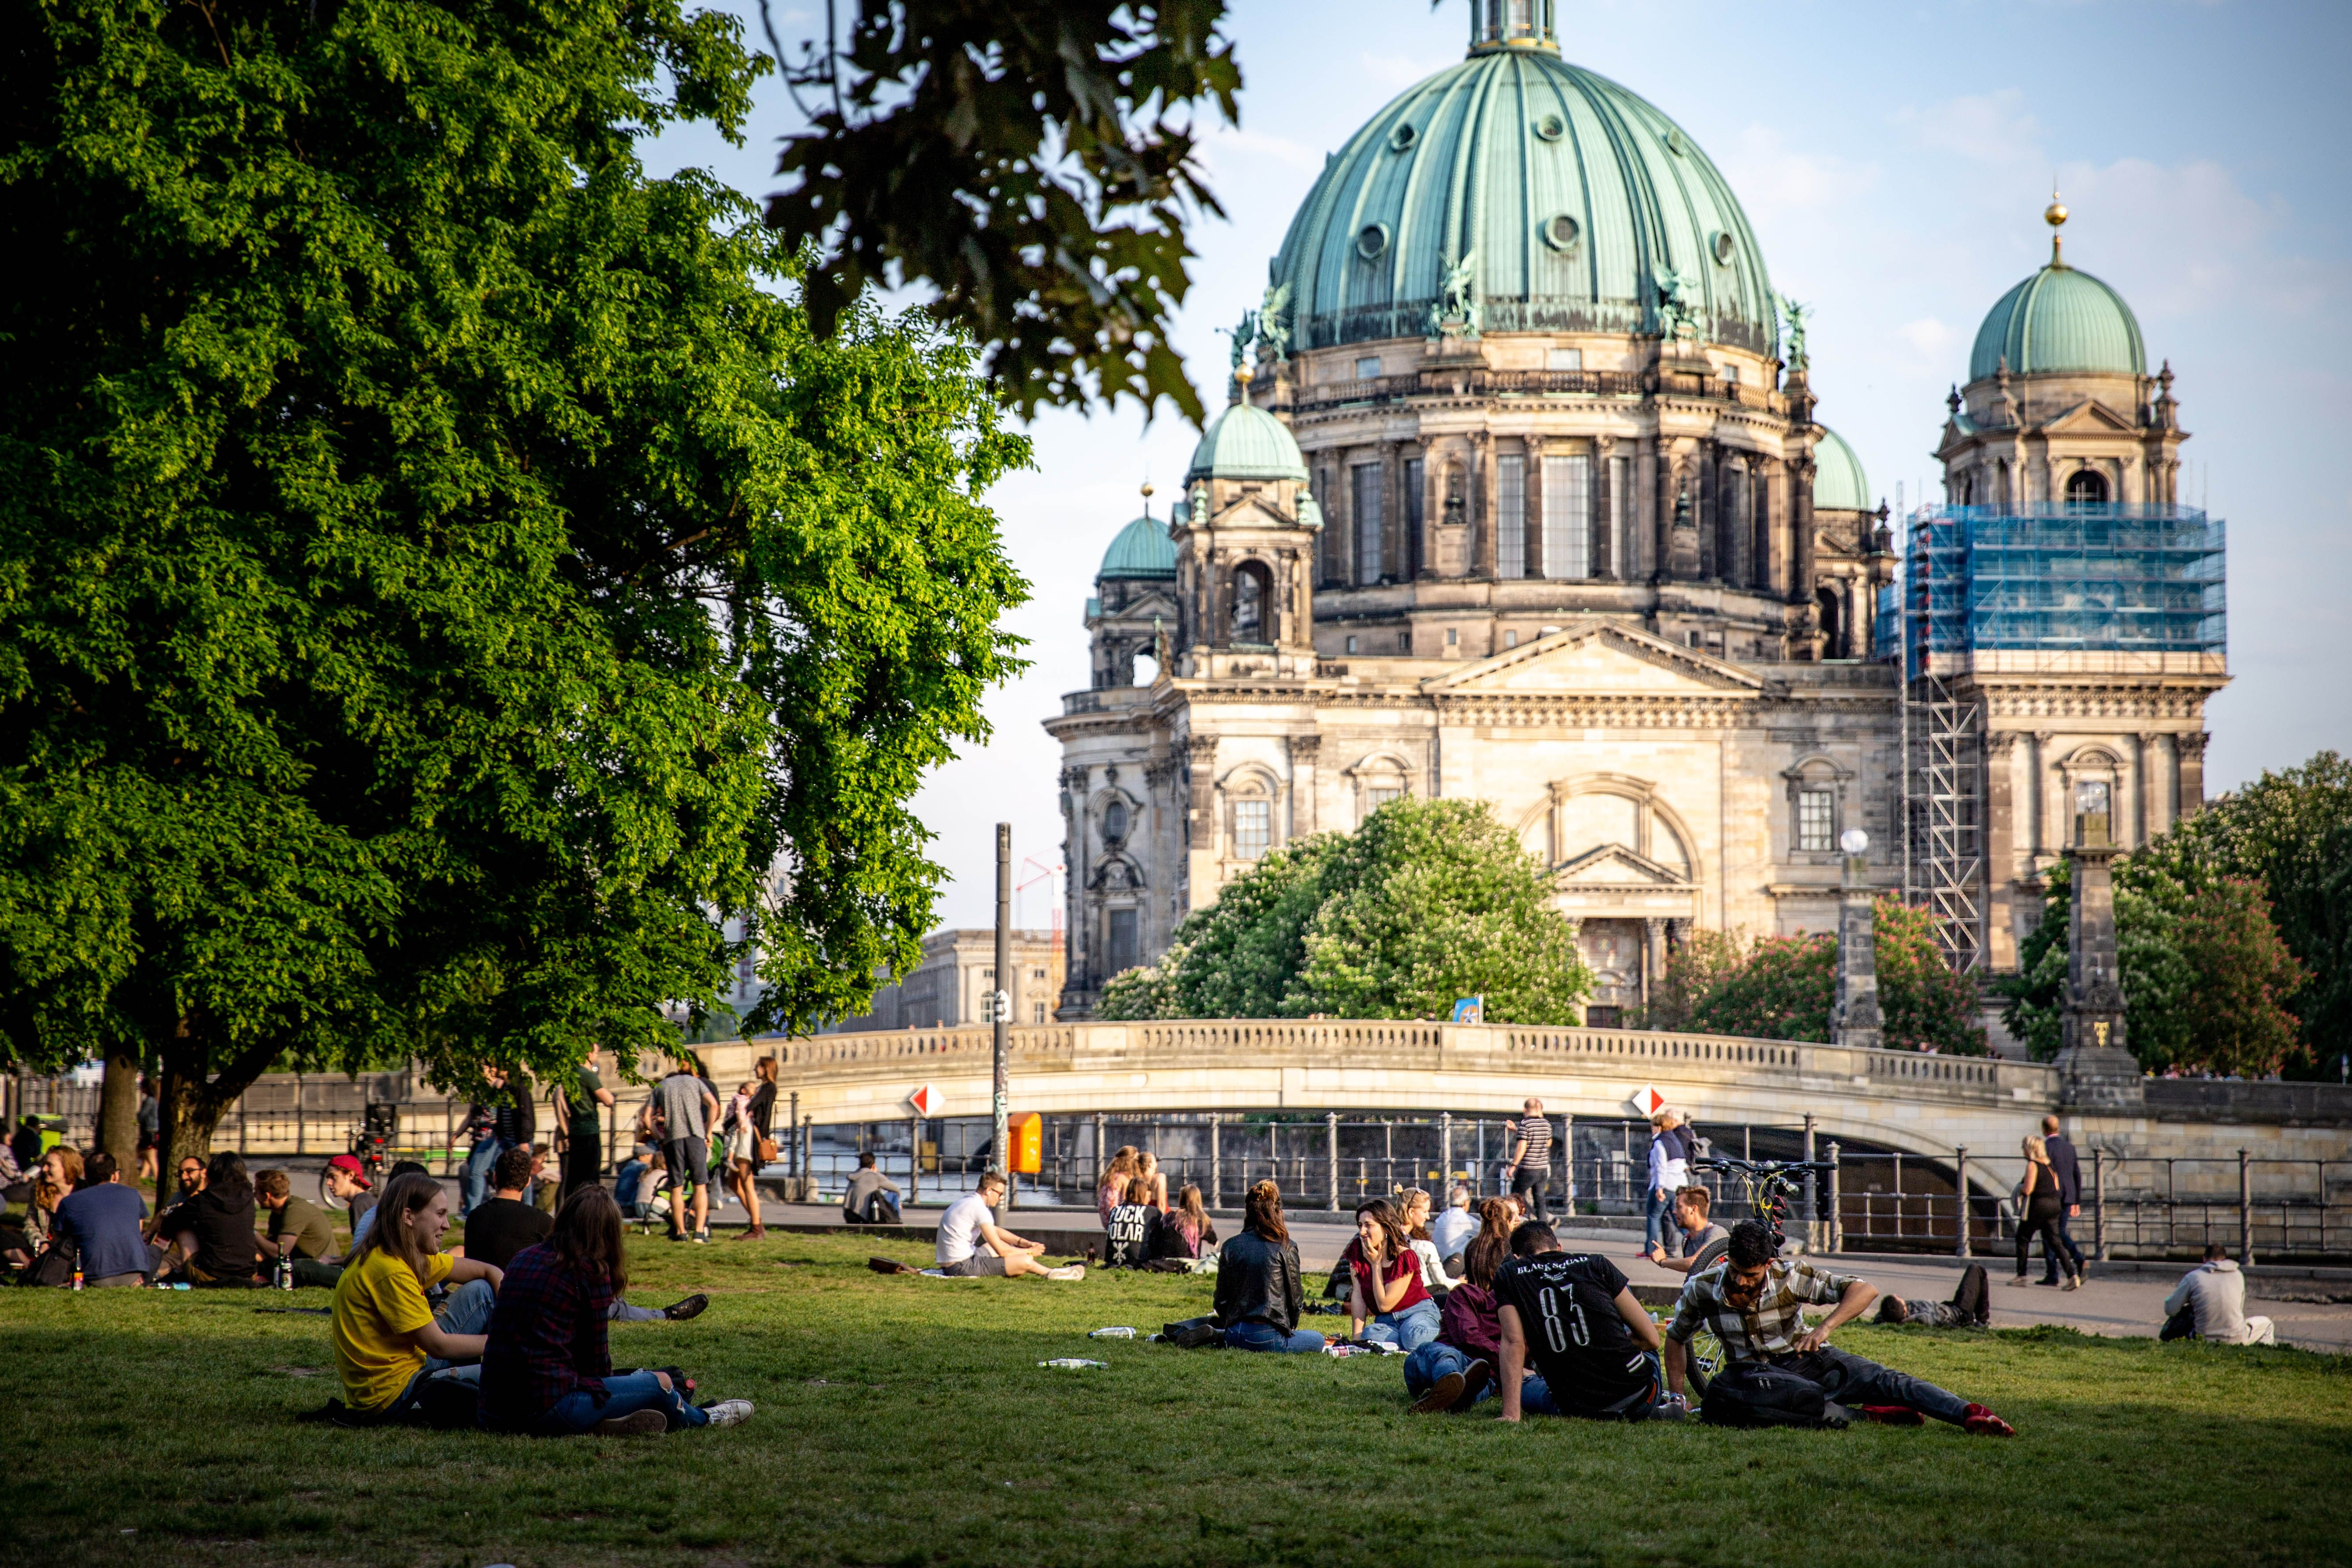 People sitting on the lawn on Museum Island in front of the Berlin Cathedral